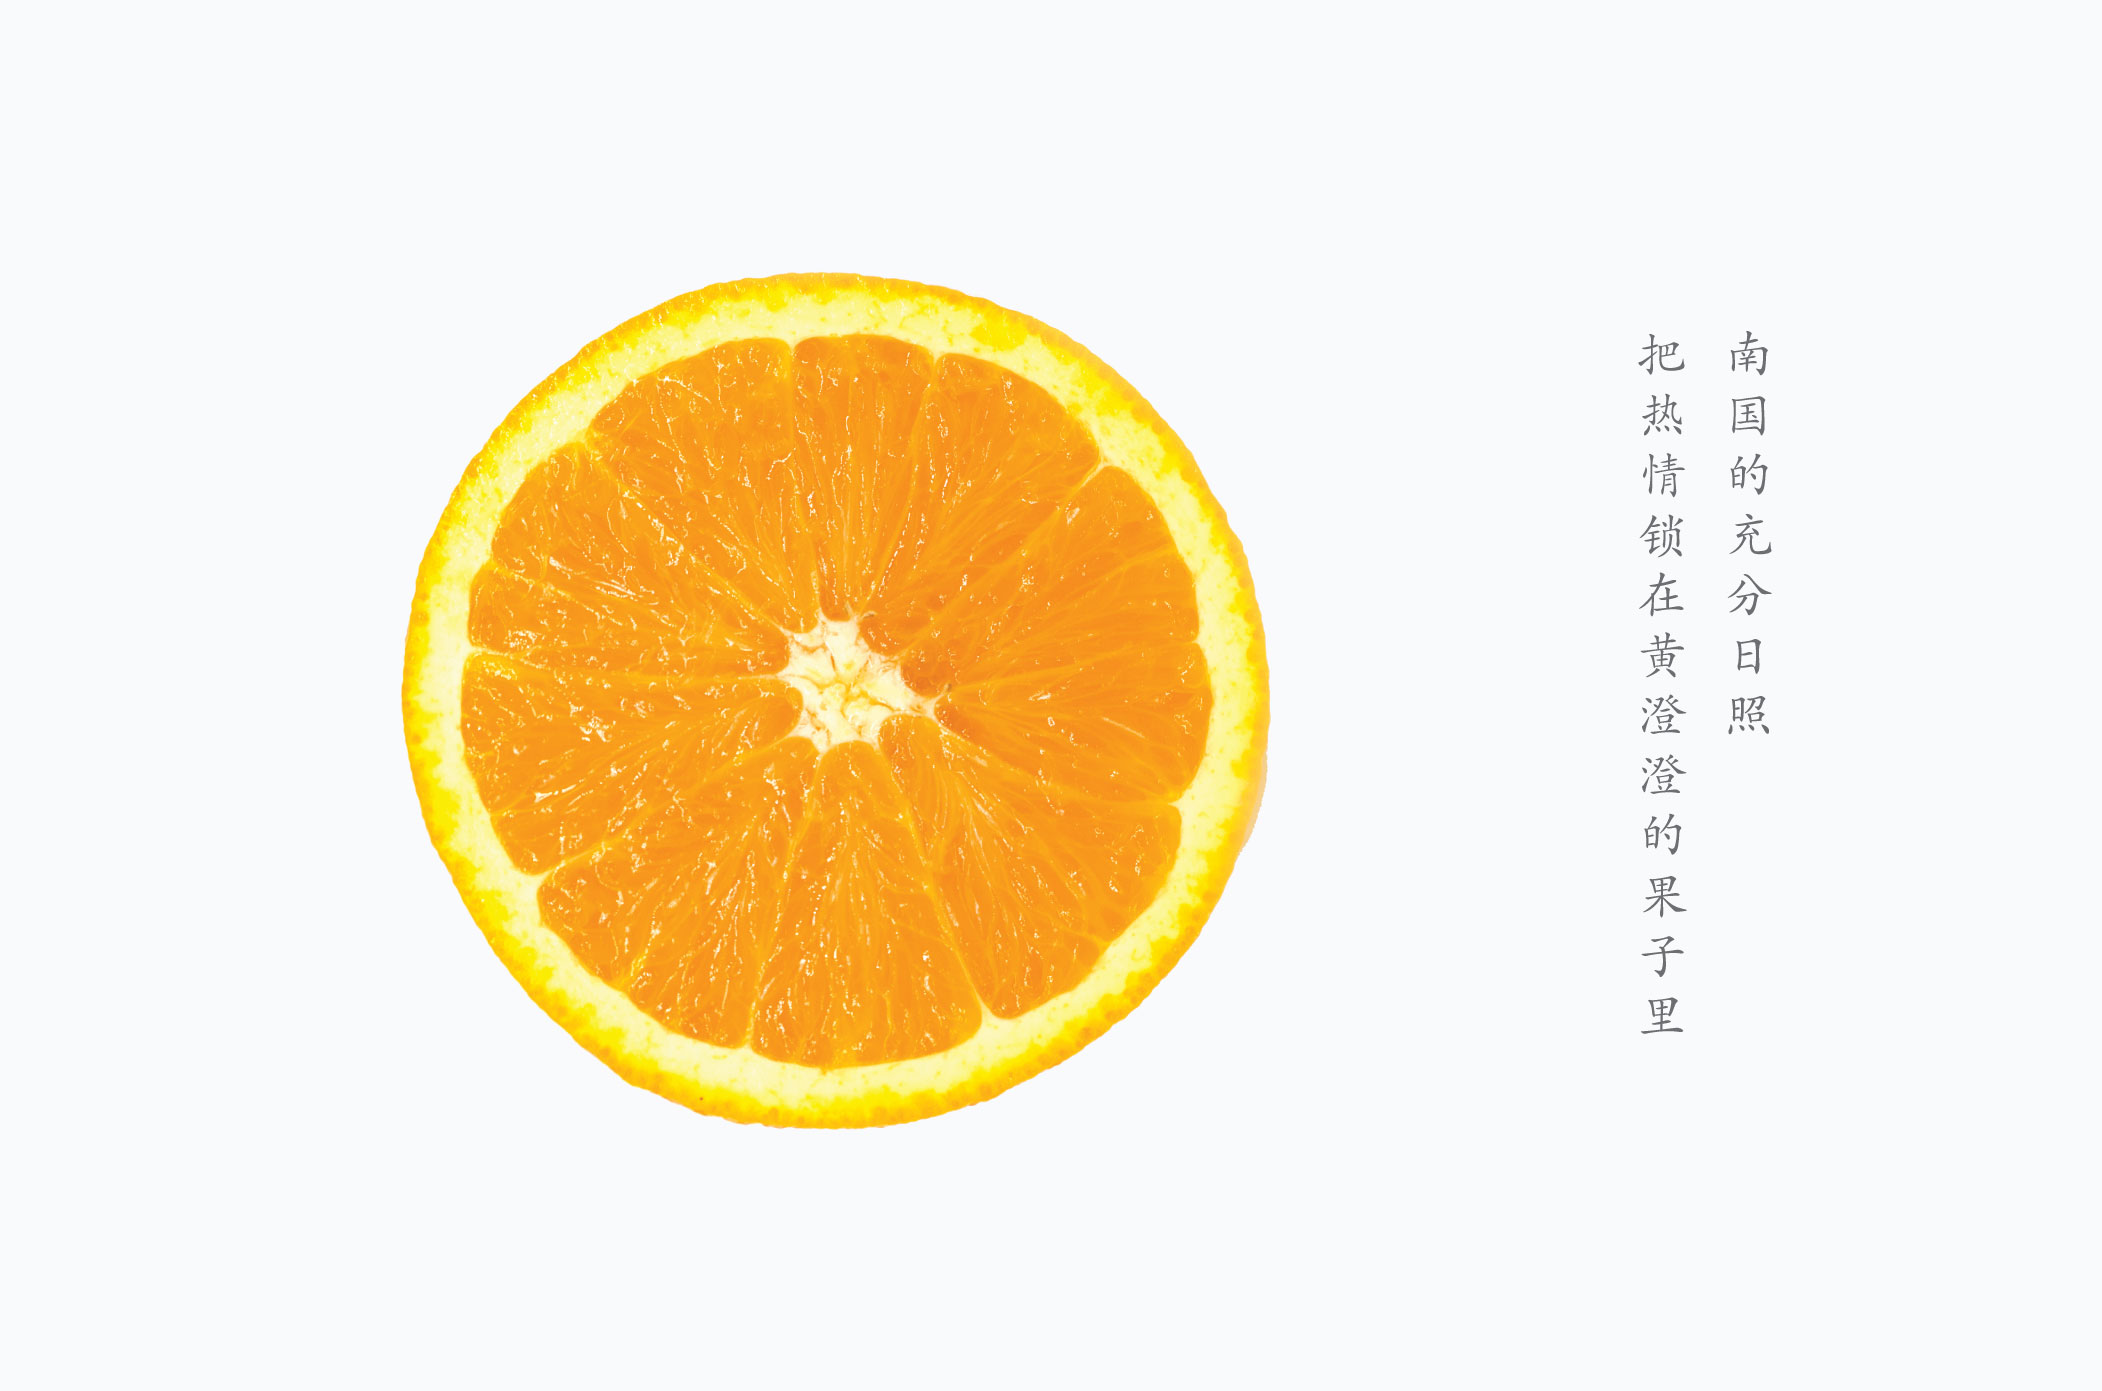 日光香橙 Orange Cool Cheese 08